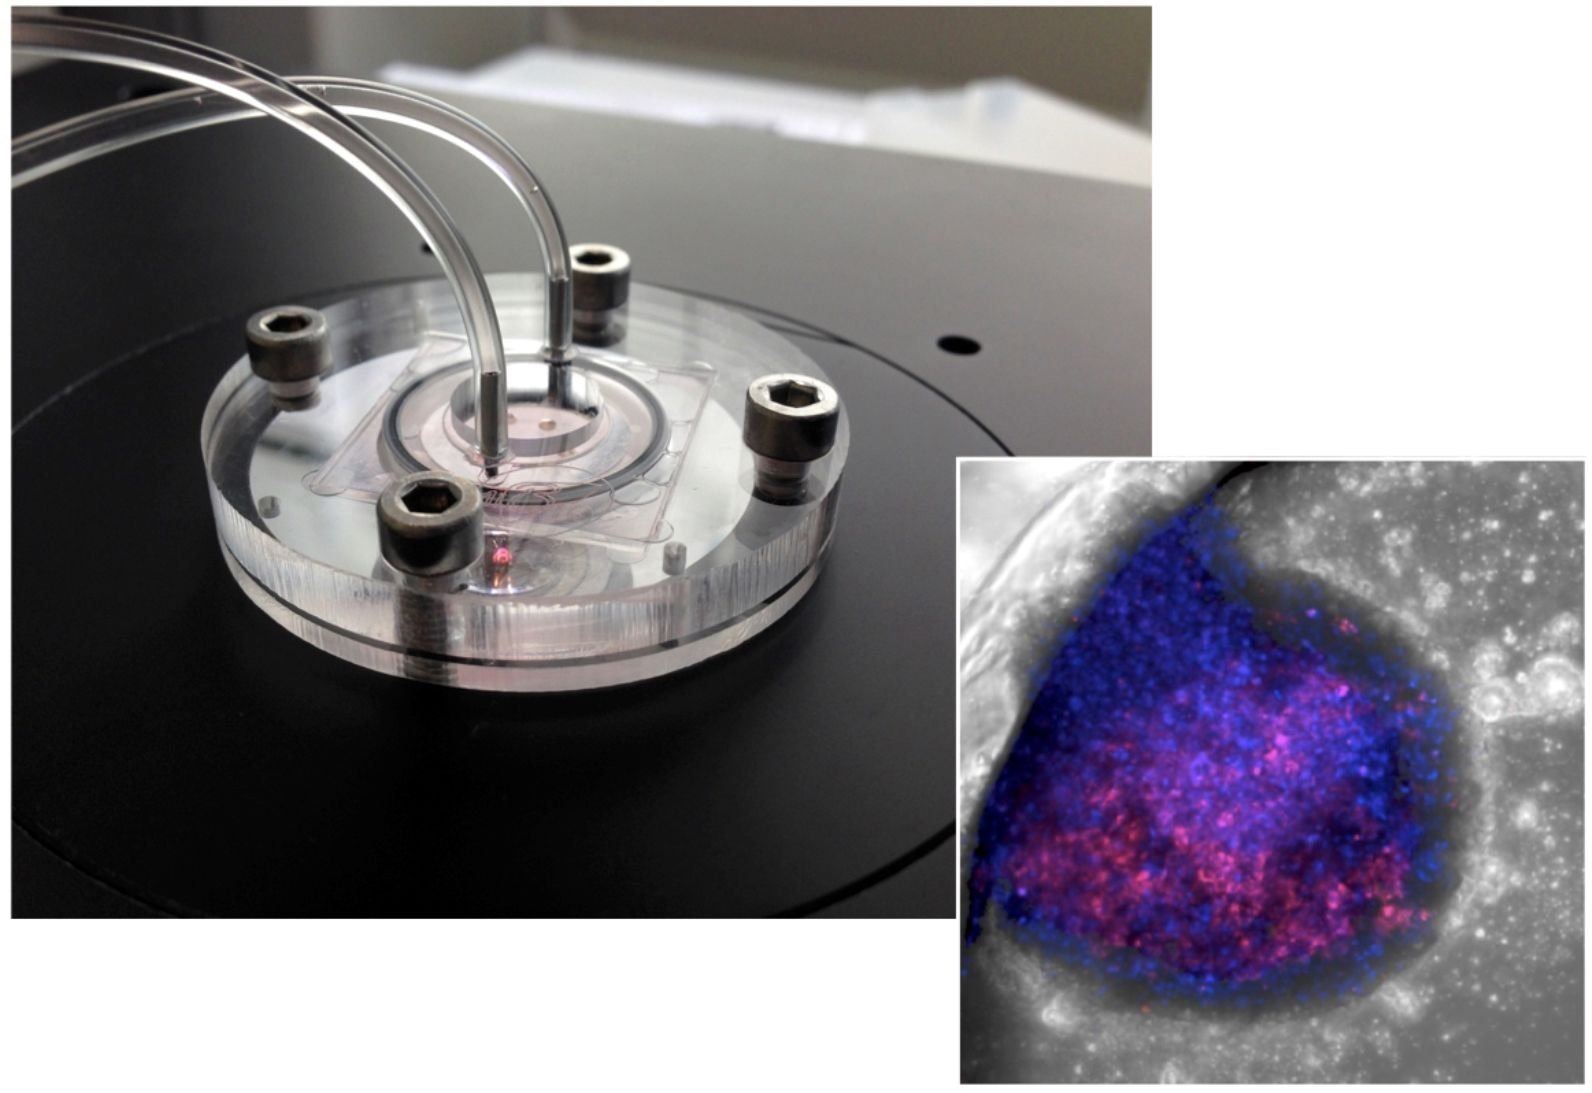 The liver-on-chip, left, and a microscopic look at it inside. Photo by Yaakov Nahmias/Hebrew University